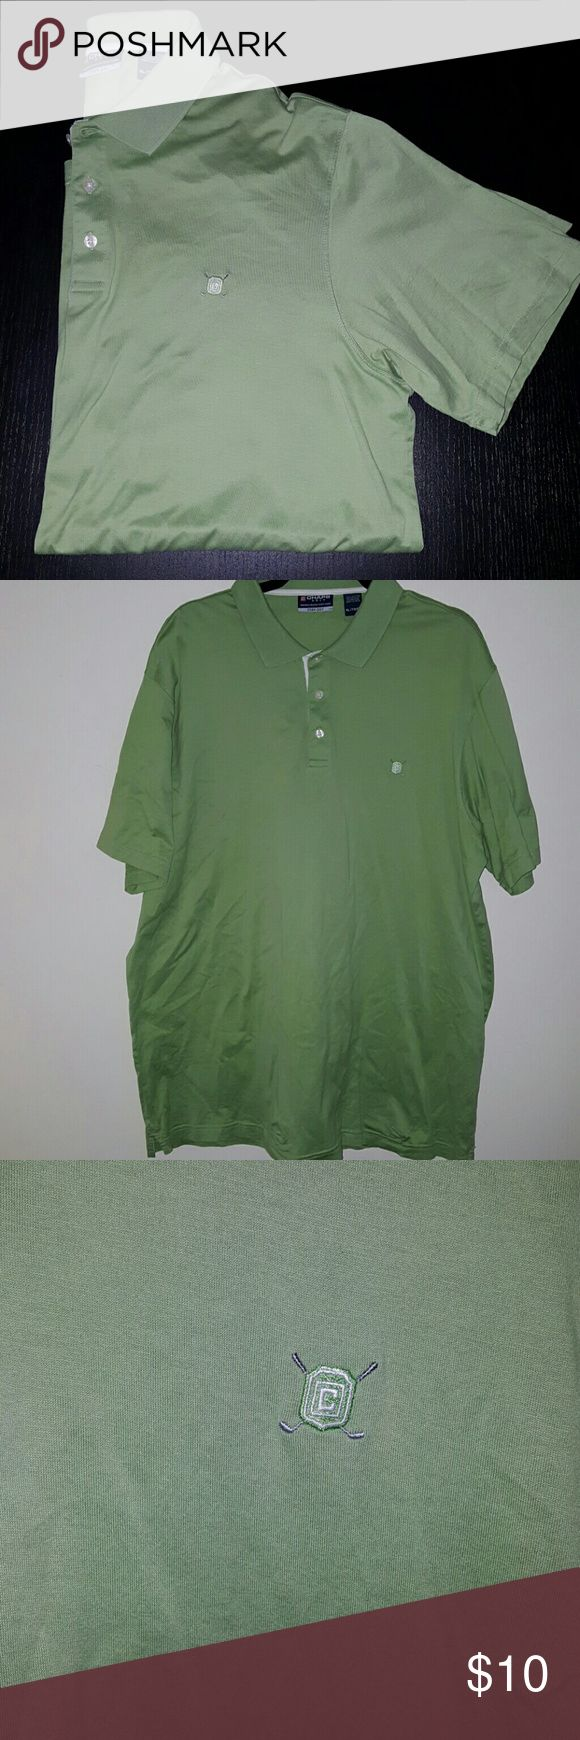 """Chaps Golf Stay Dry Mint Green Short Sleeve Good Condition   Size XL  Armpit to Armpit 25""""  Front top to bottom 28.5""""  Back top to bottom 33""""  Shoulder to end 10""""  Neck 9.5"""" across   Did I forget something? ASK QUESTIONS! Chaps Shirts Polos"""